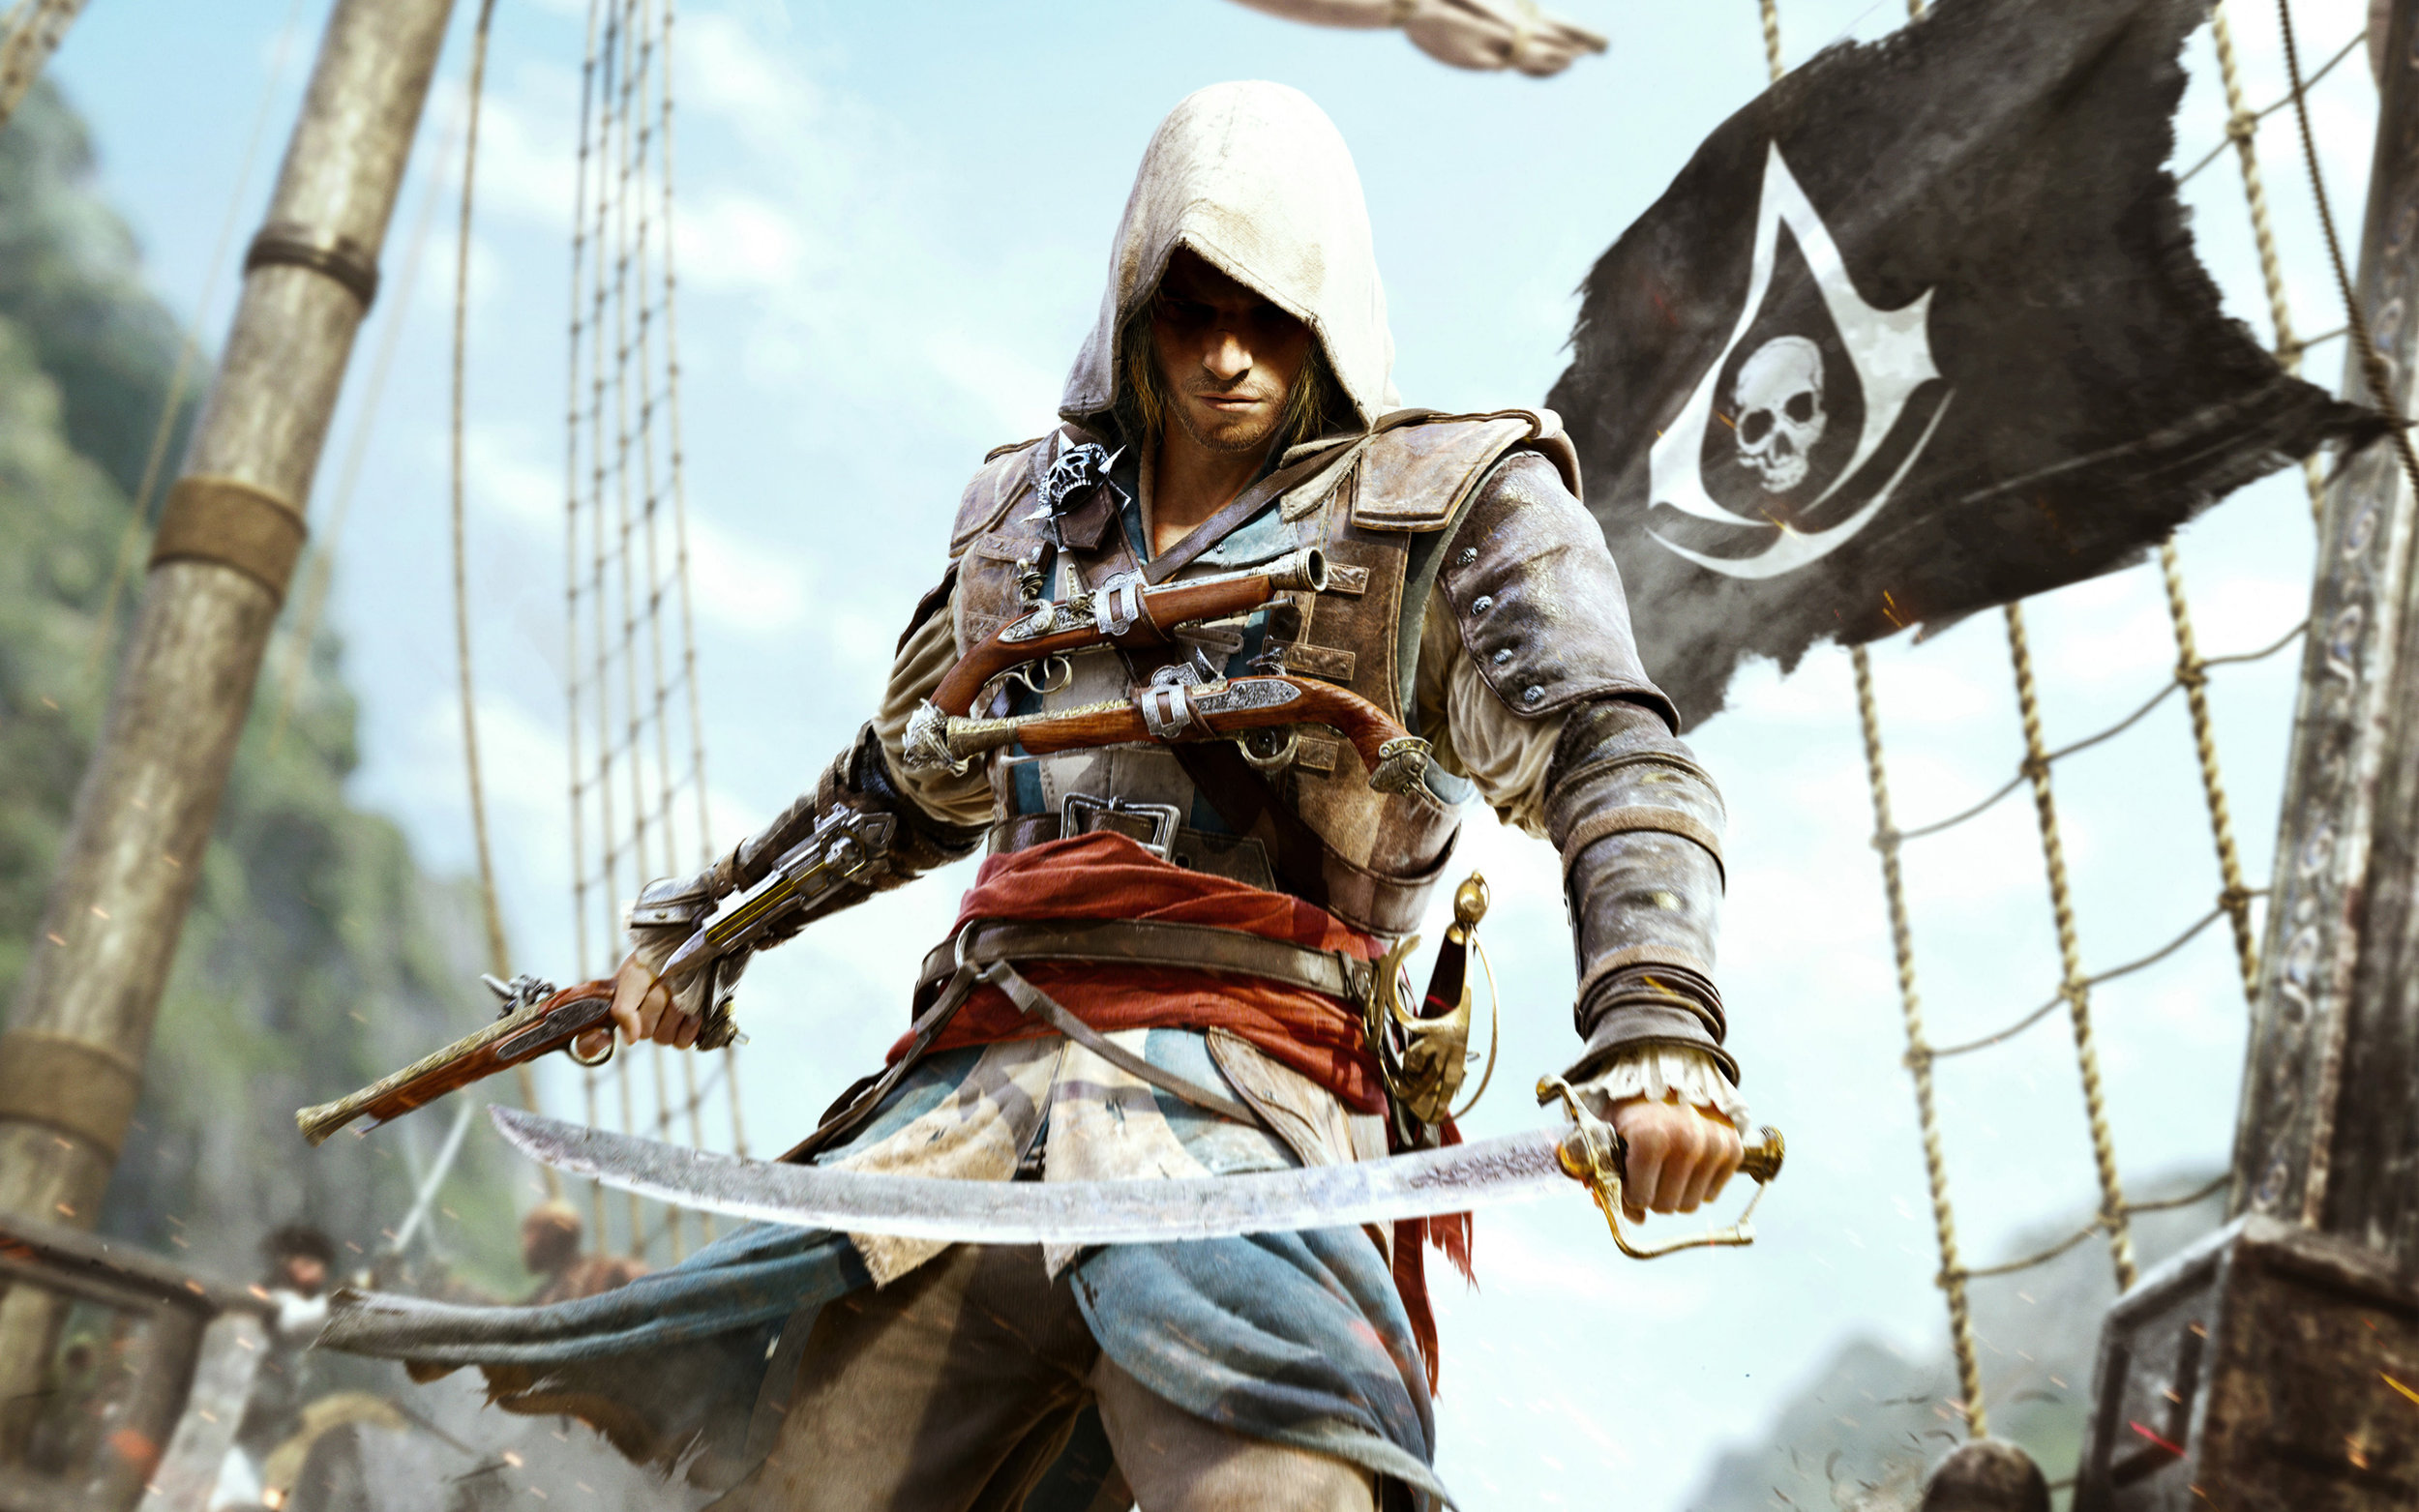 Why, a white boy, why did Assassin's Creed need a Pirate theme? Thanks, Ubisoft.